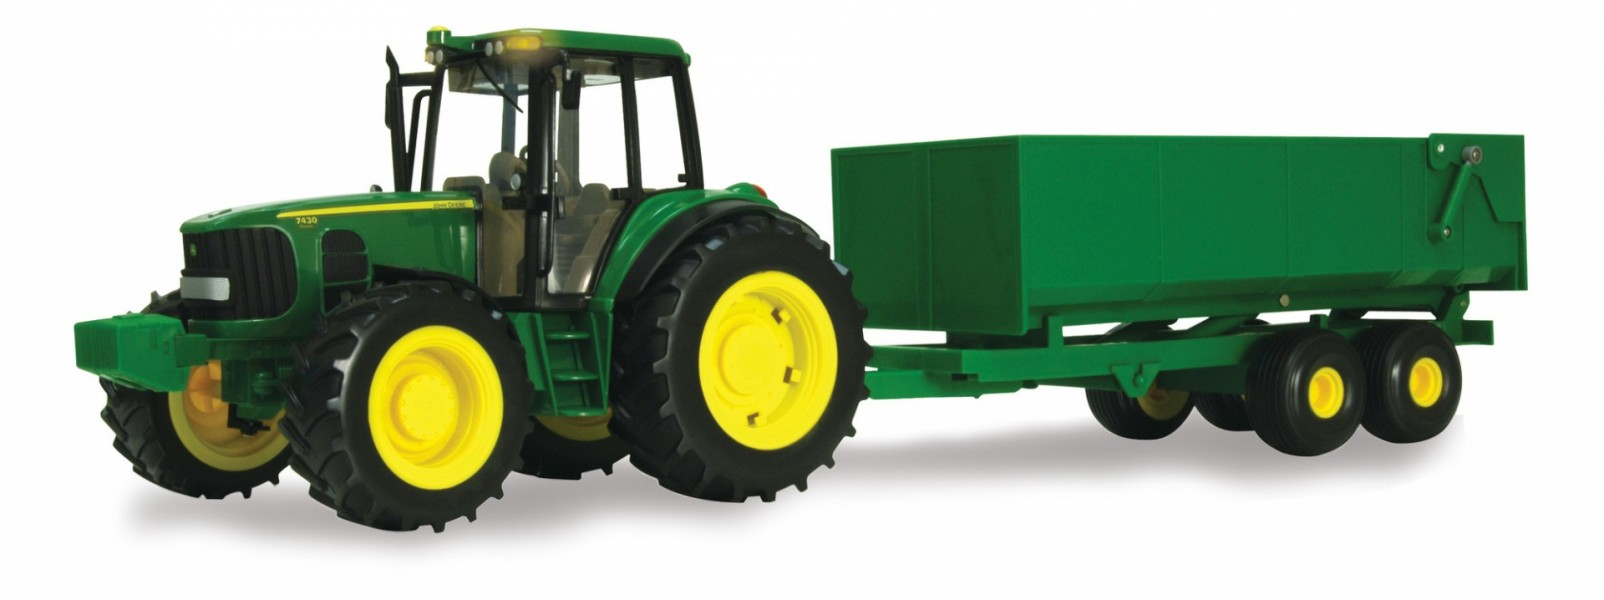 1/16 Big Farm Tractor with wagon